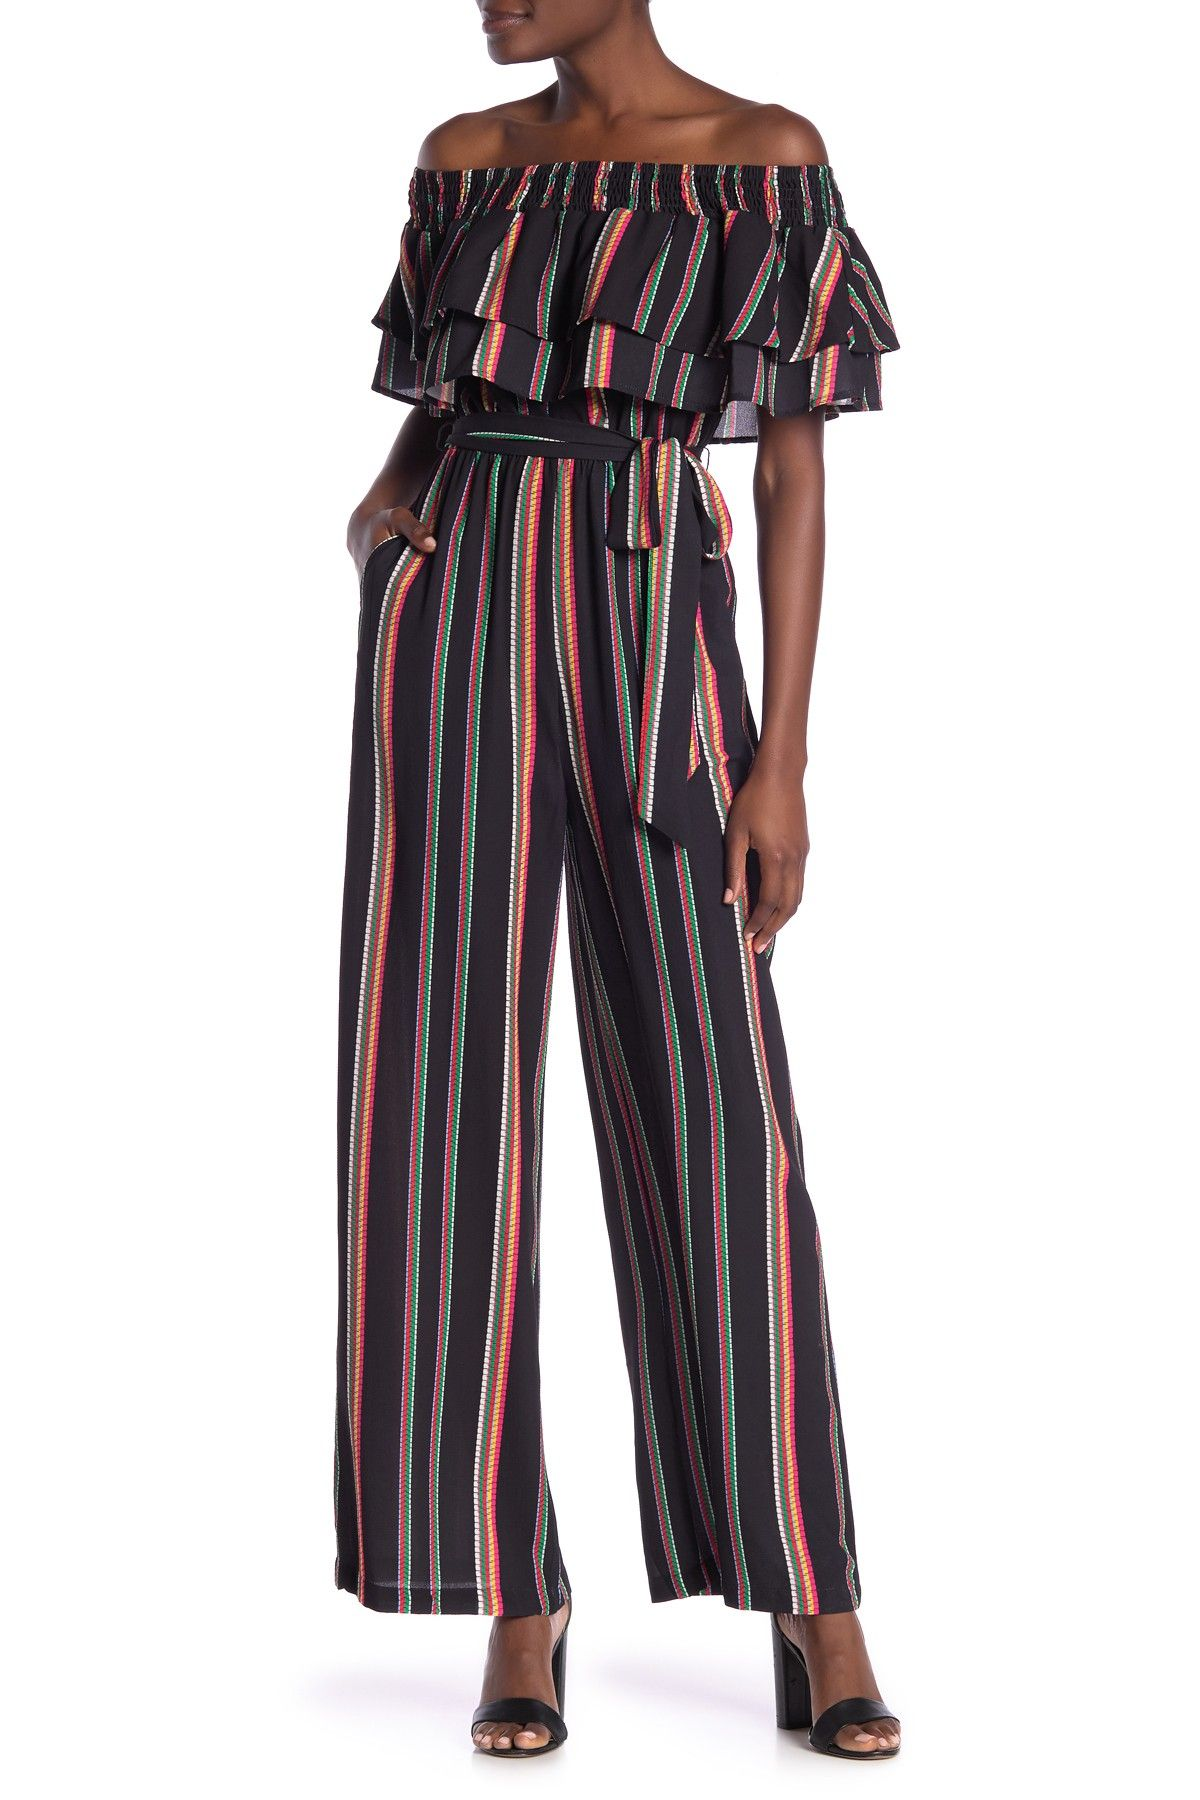 b8e1016e11faf Off-the-Shoulder Multicolor Stripe Tie Waist Jumpsuit by Flying Tomato on   nordstrom rack